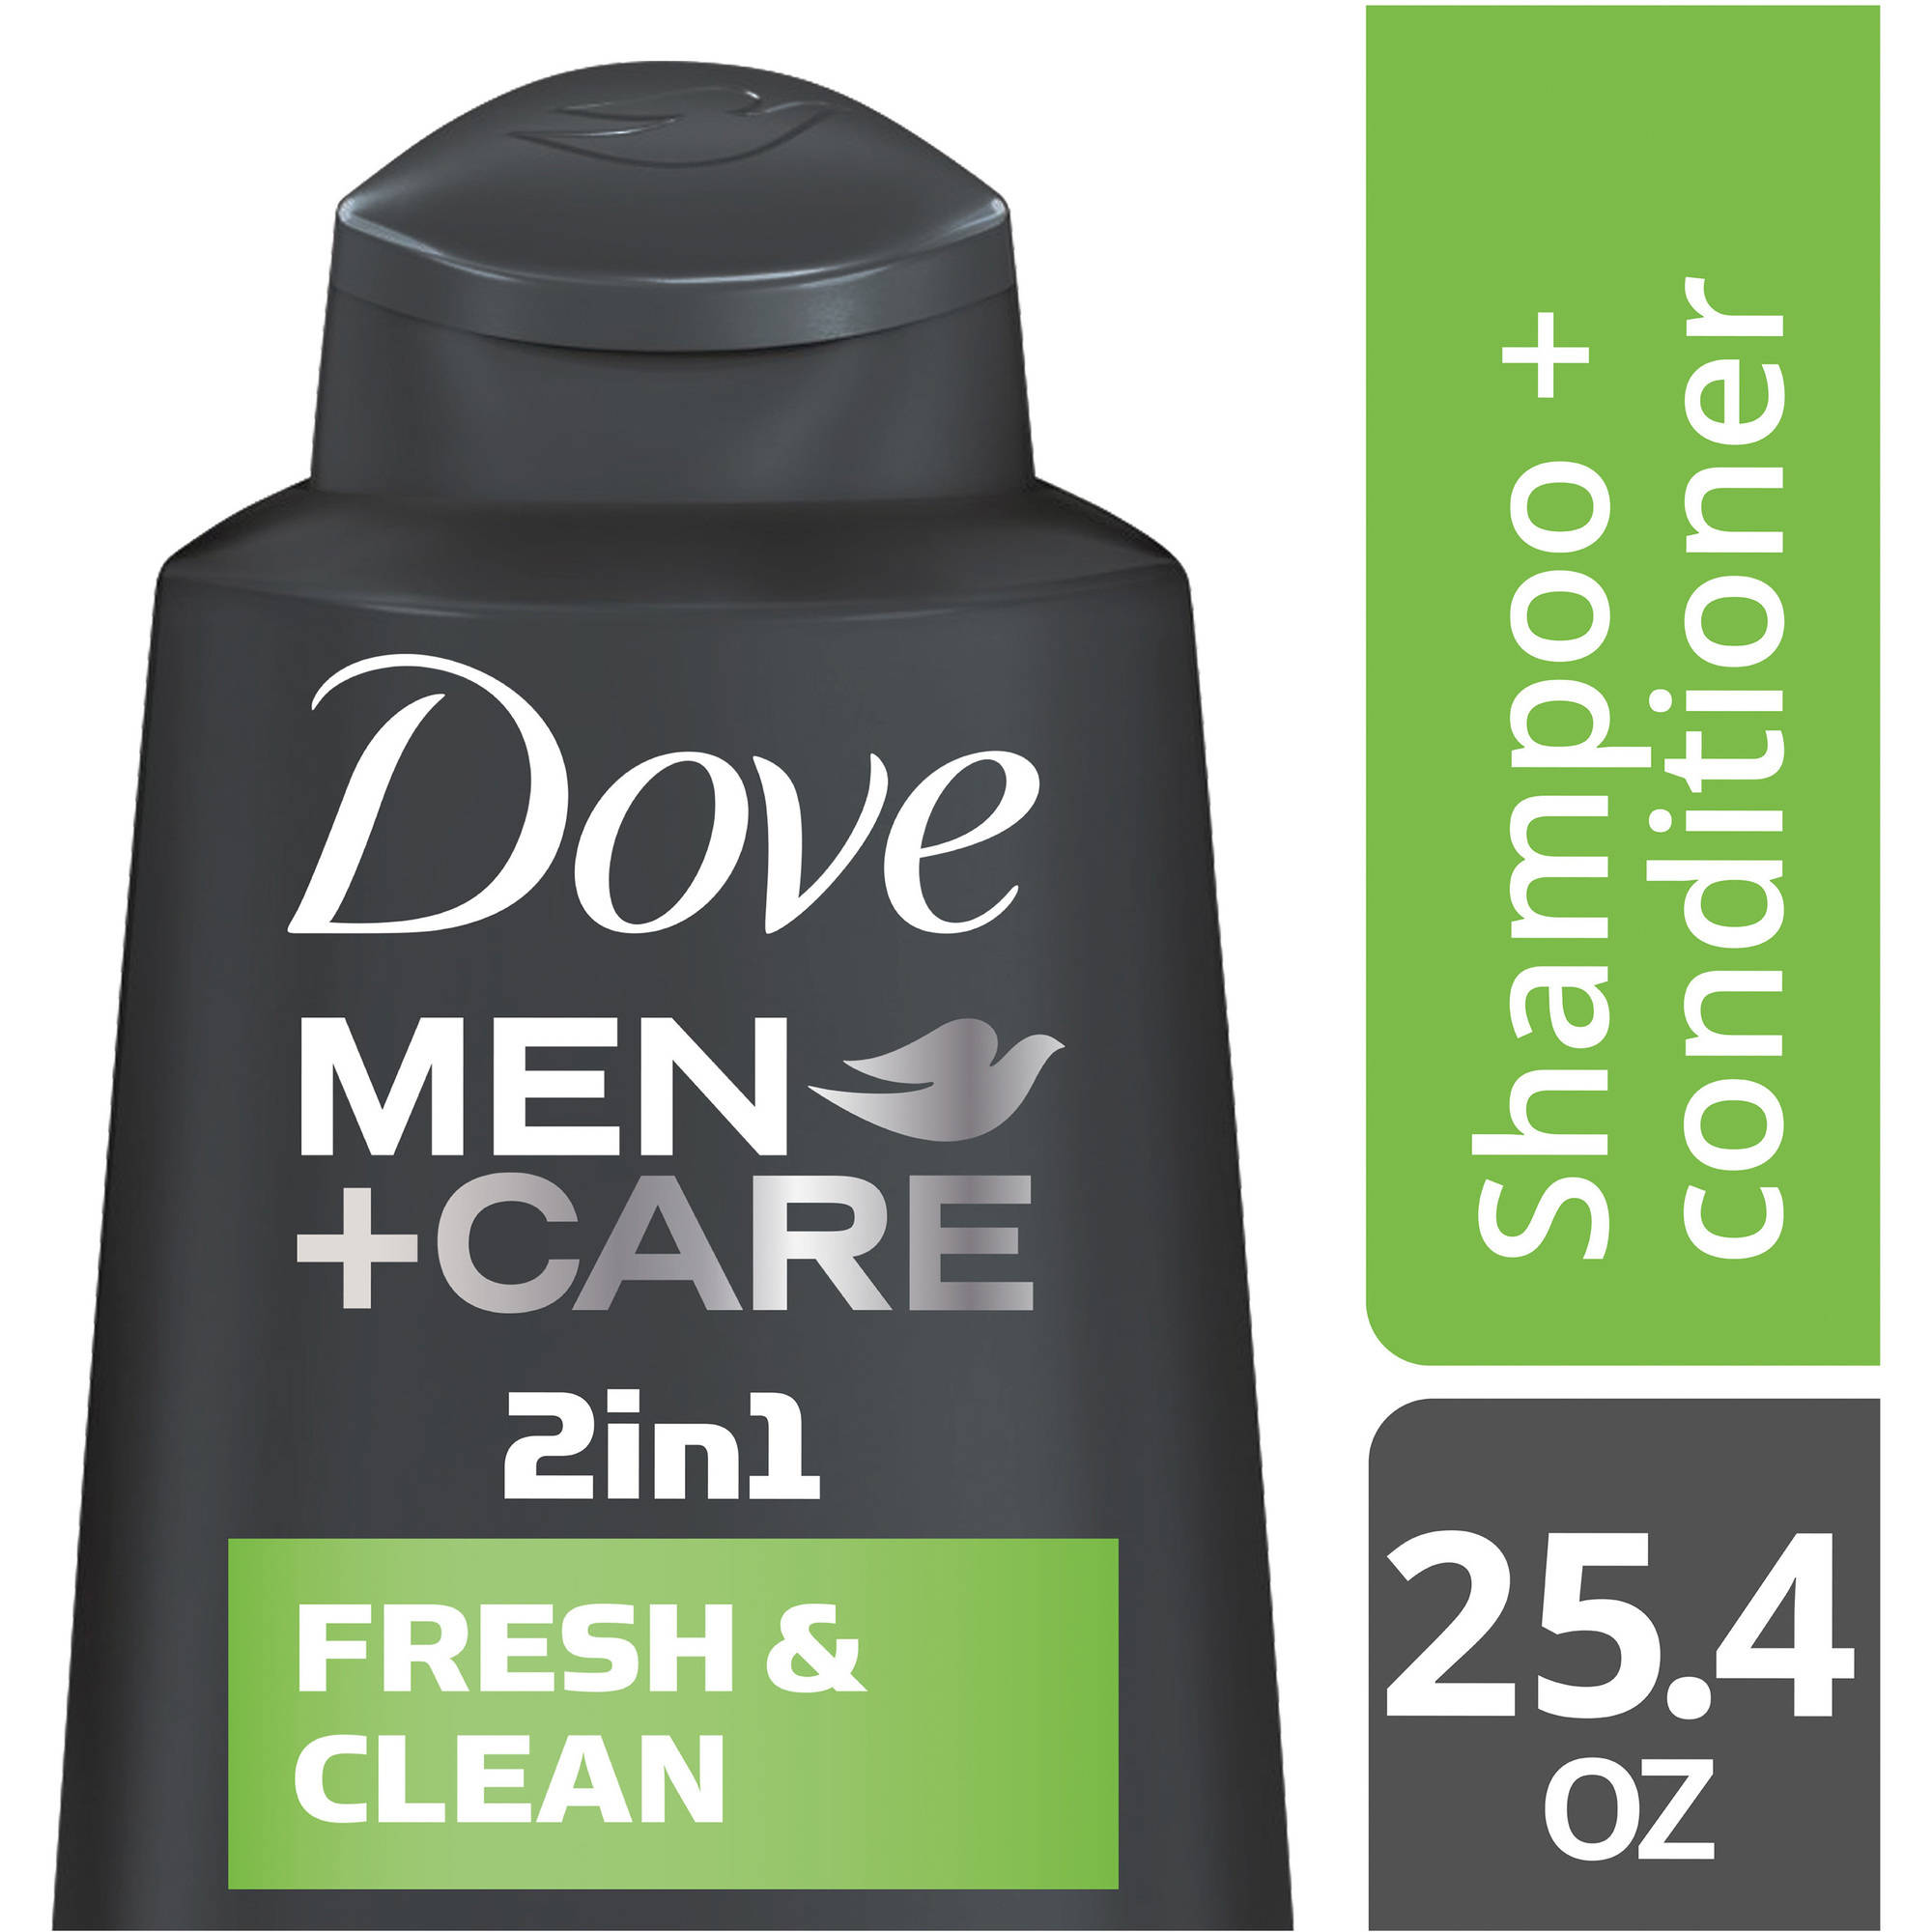 Dove Men+Care Fresh and Clean 2 in 1 Shampoo and Conditioner, 25.4 oz